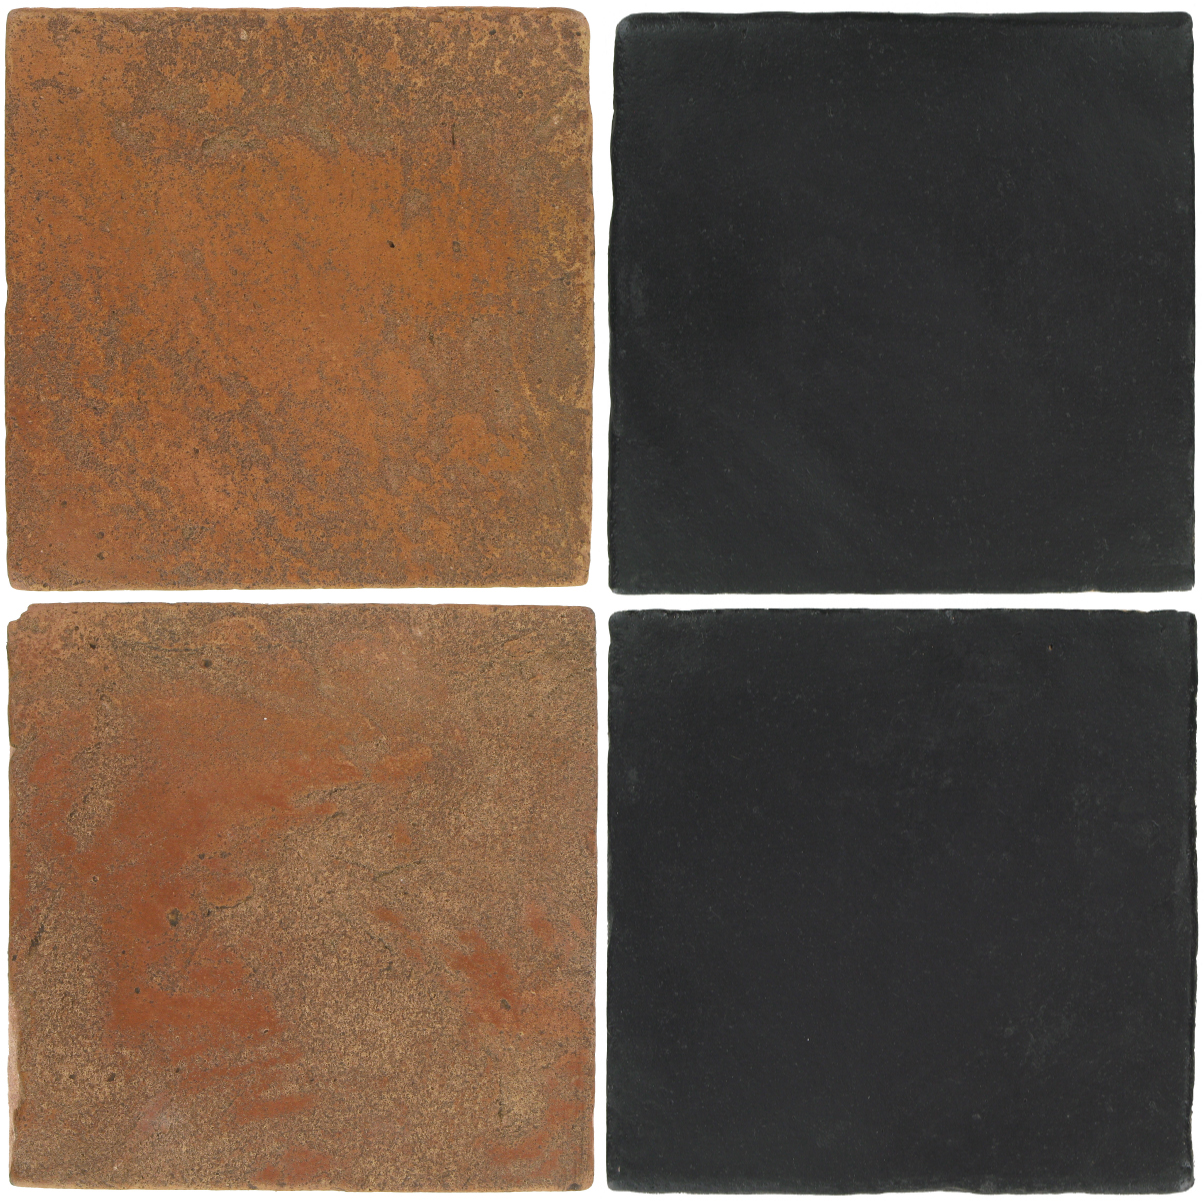 Pedralbes Antique Terracotta  2 Color Combinations  VTG-PSTR Traditional + OHS-PGCB Carbon Black